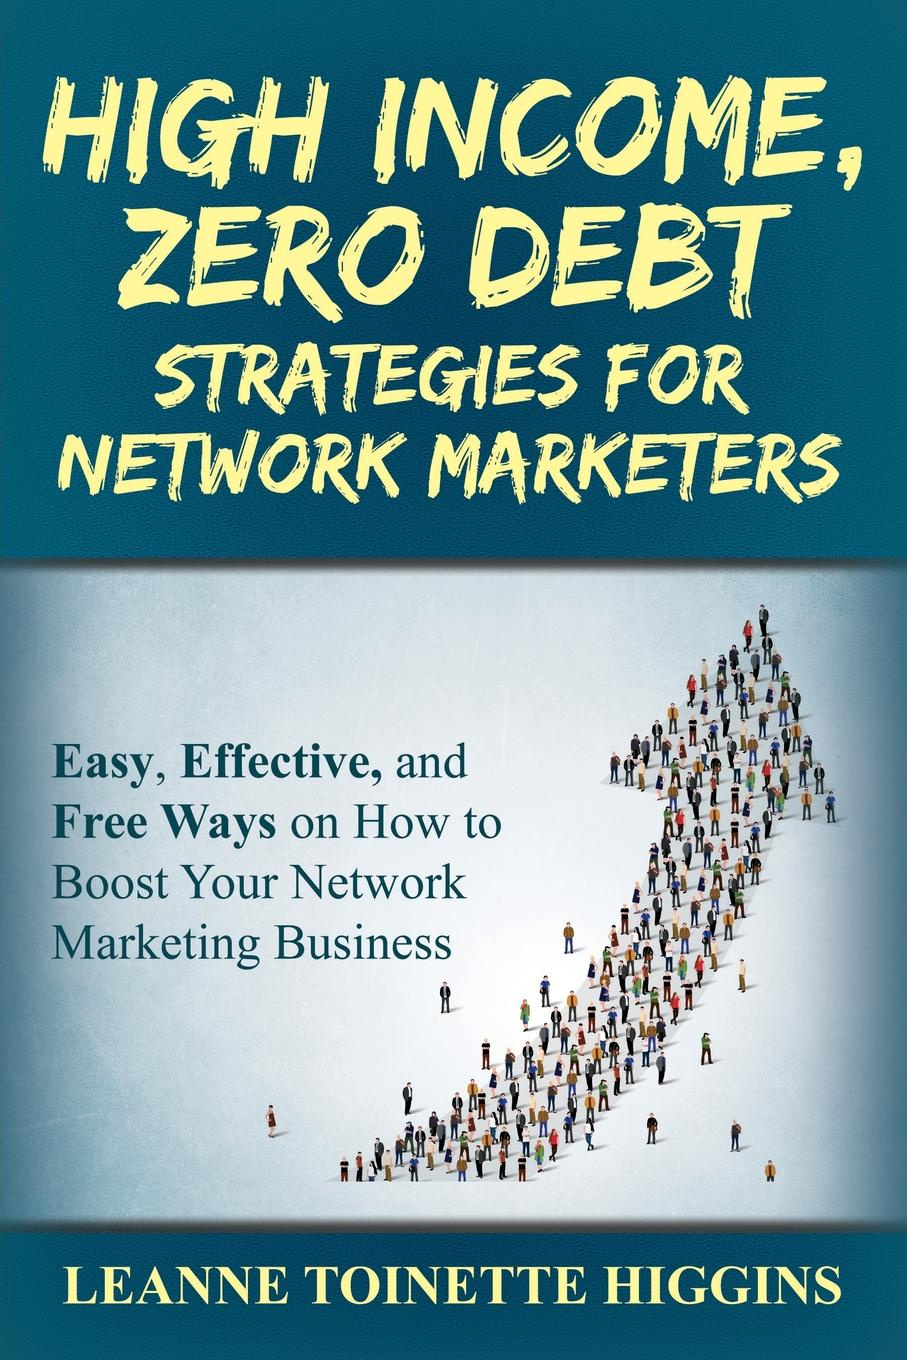 Leanne Toinette Higgins High Income, Zero Debt Strategies for Network Marketers. Easy, Effective, and Free Ways on How to Boost Your Network Marketing Business gunnar schuster network marketing enrichment or deception